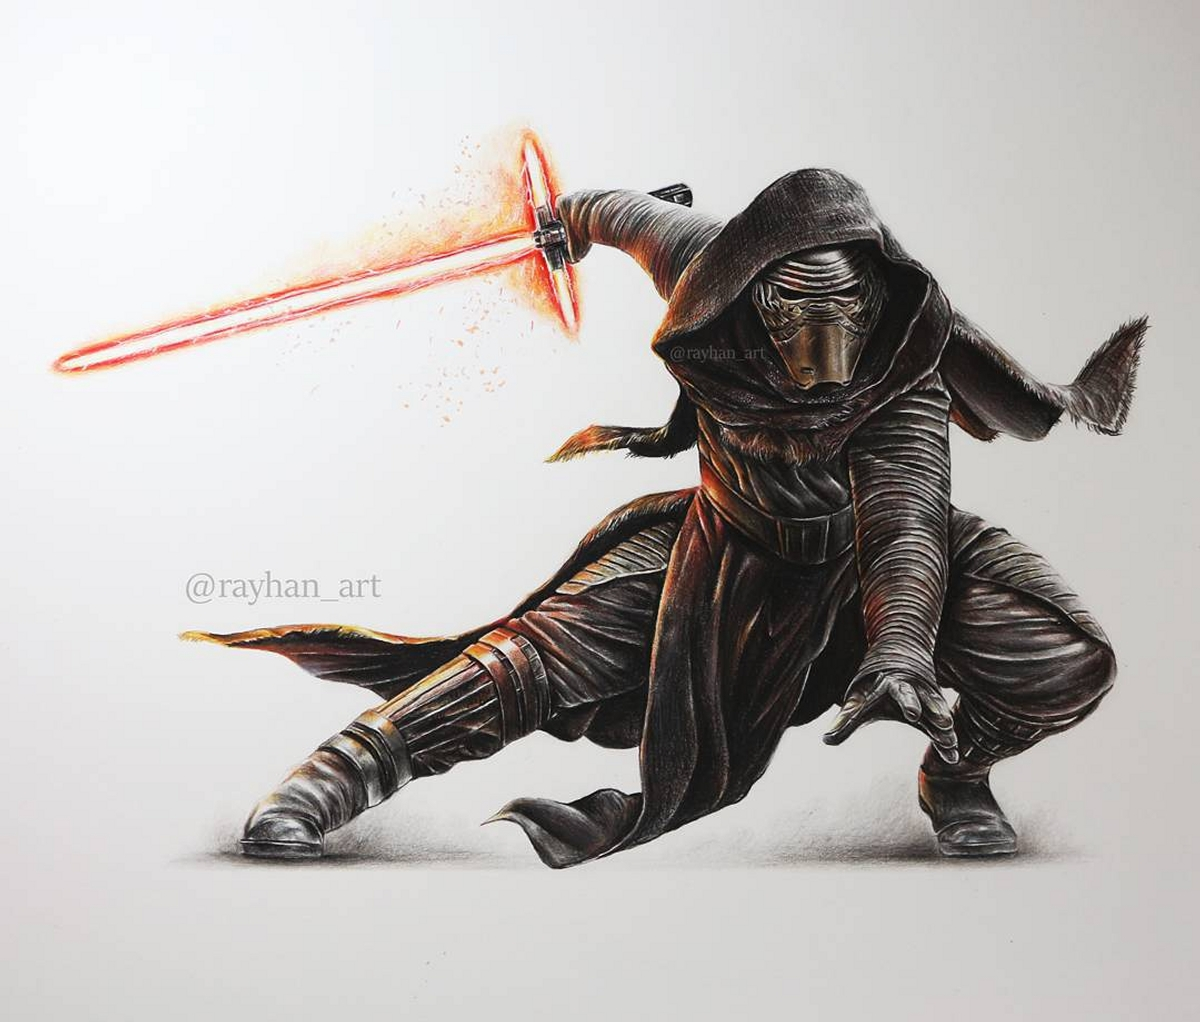 03-Kylo-Ren-Rayhan-Miah-Movie-Characters-Drawings-and-More-www-designstack-co